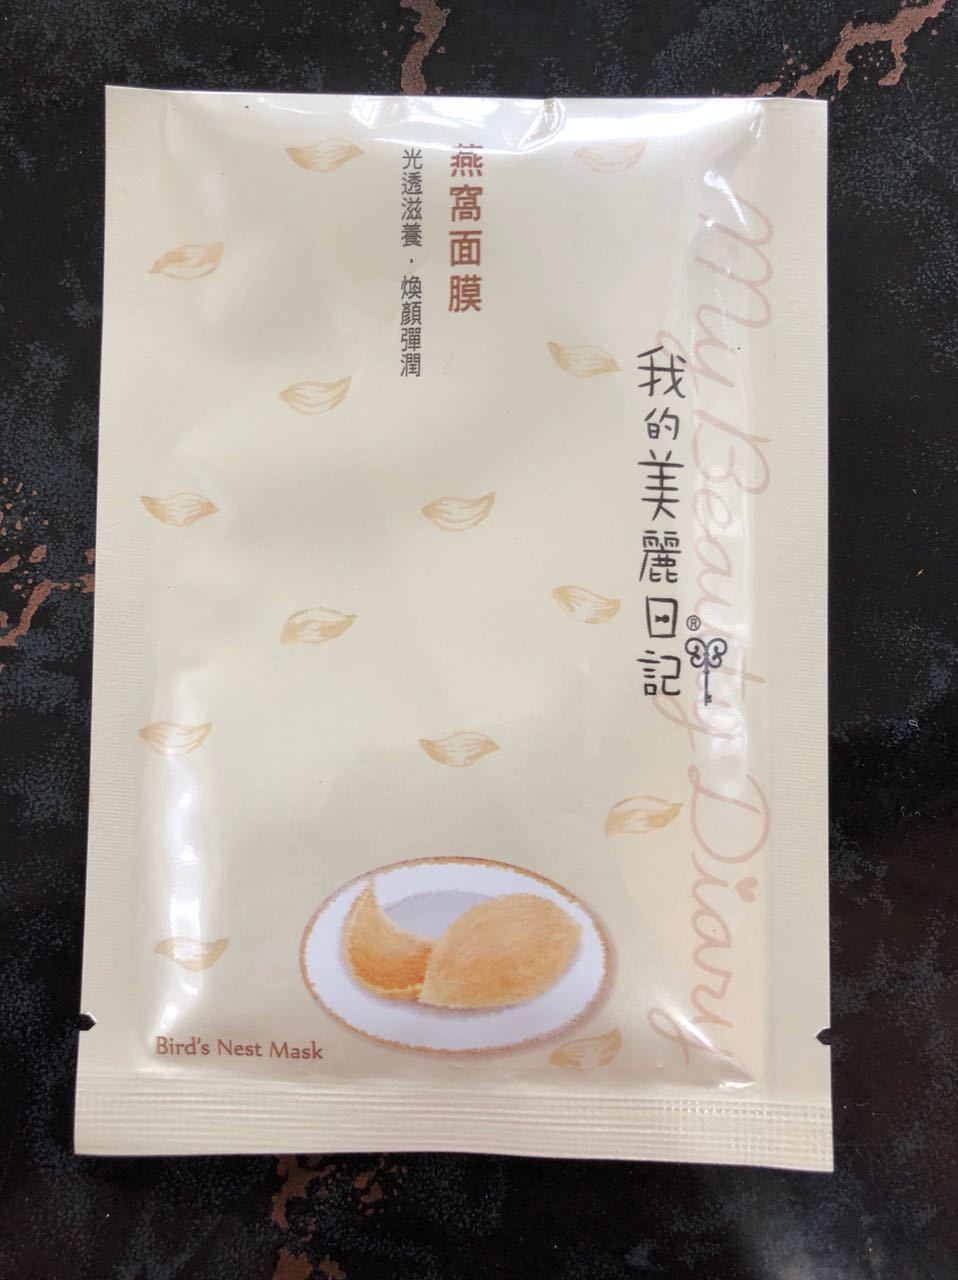 My Beauty Diary Mask - Bird's Nest Mask